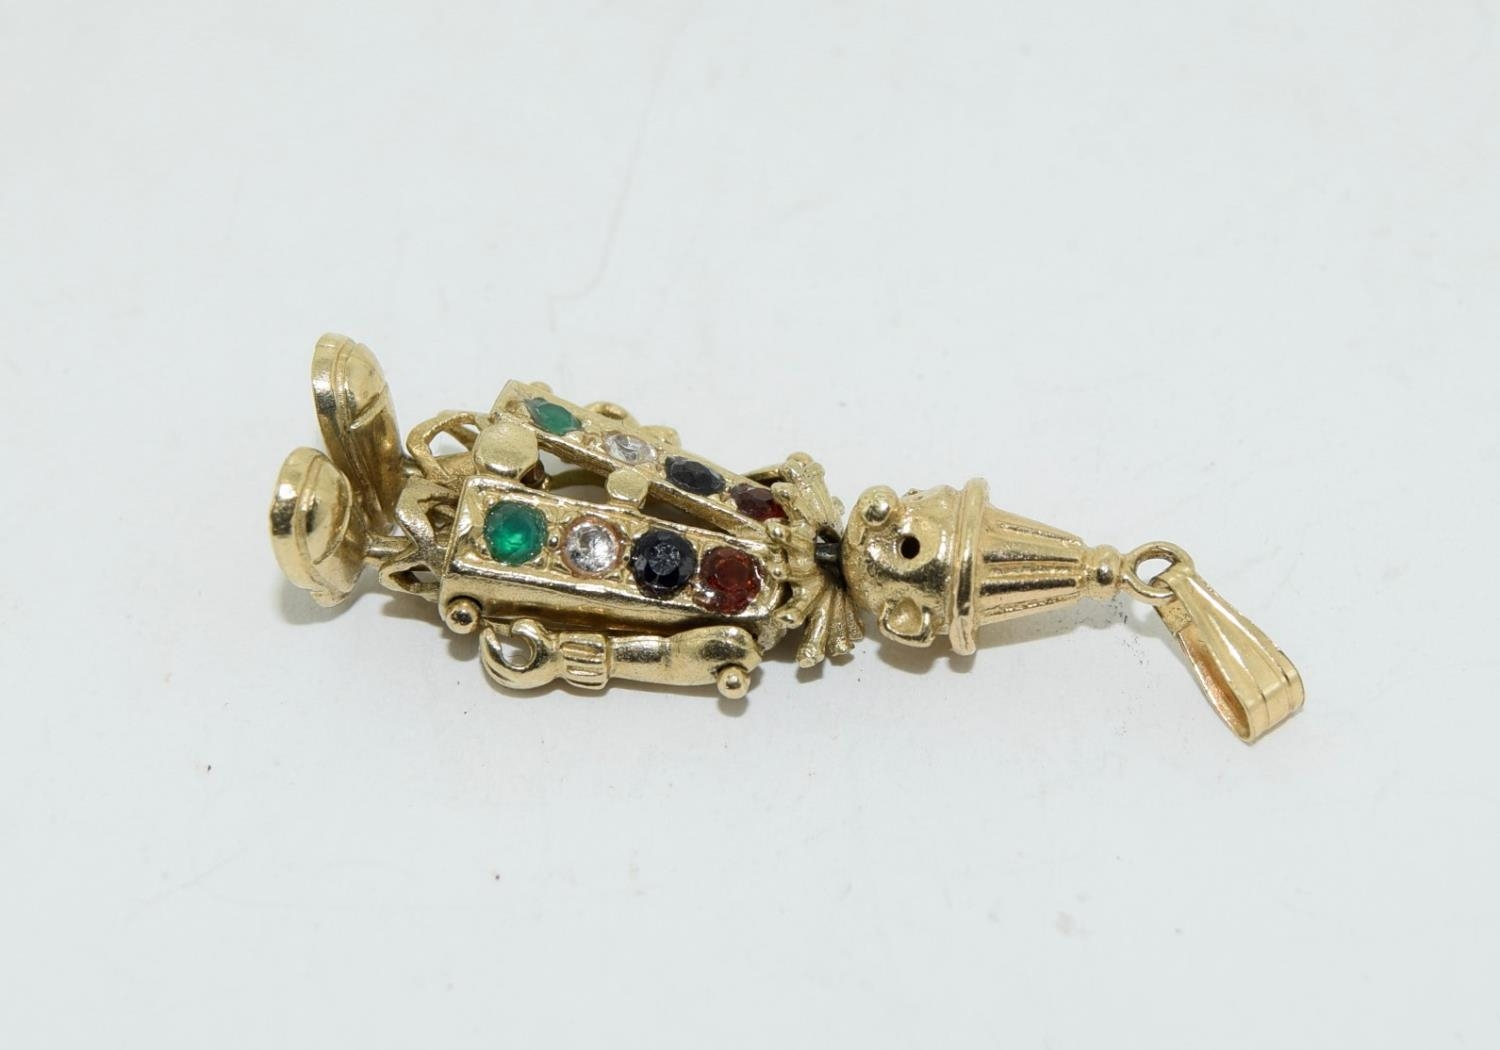 9ct gold charm as an articulated clown figure set with precious stone